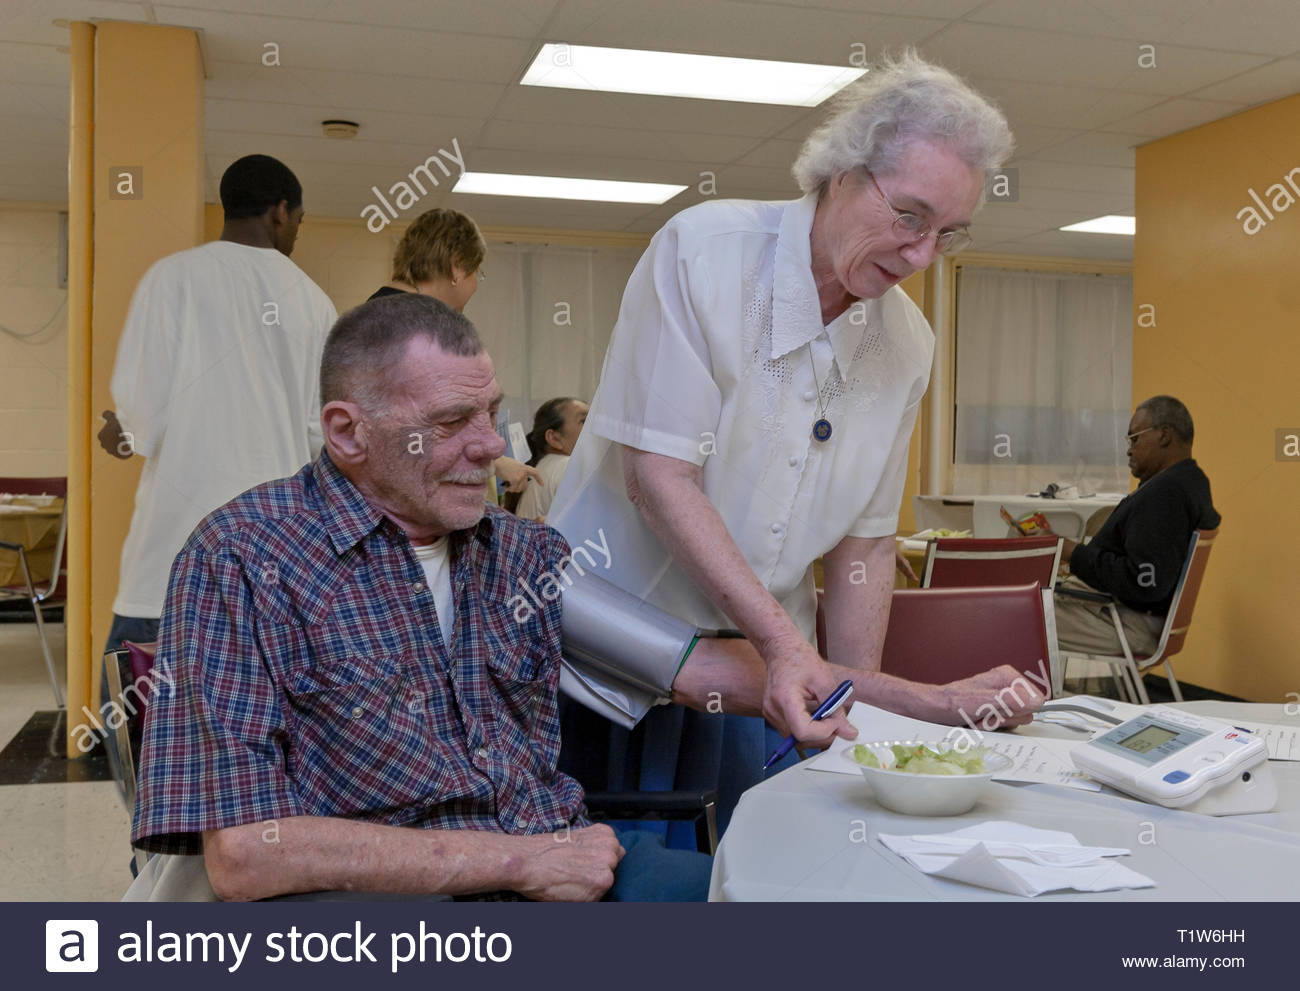 A female nurse takes the blood pressure of a senior man in a community outreach program. - Stock Image